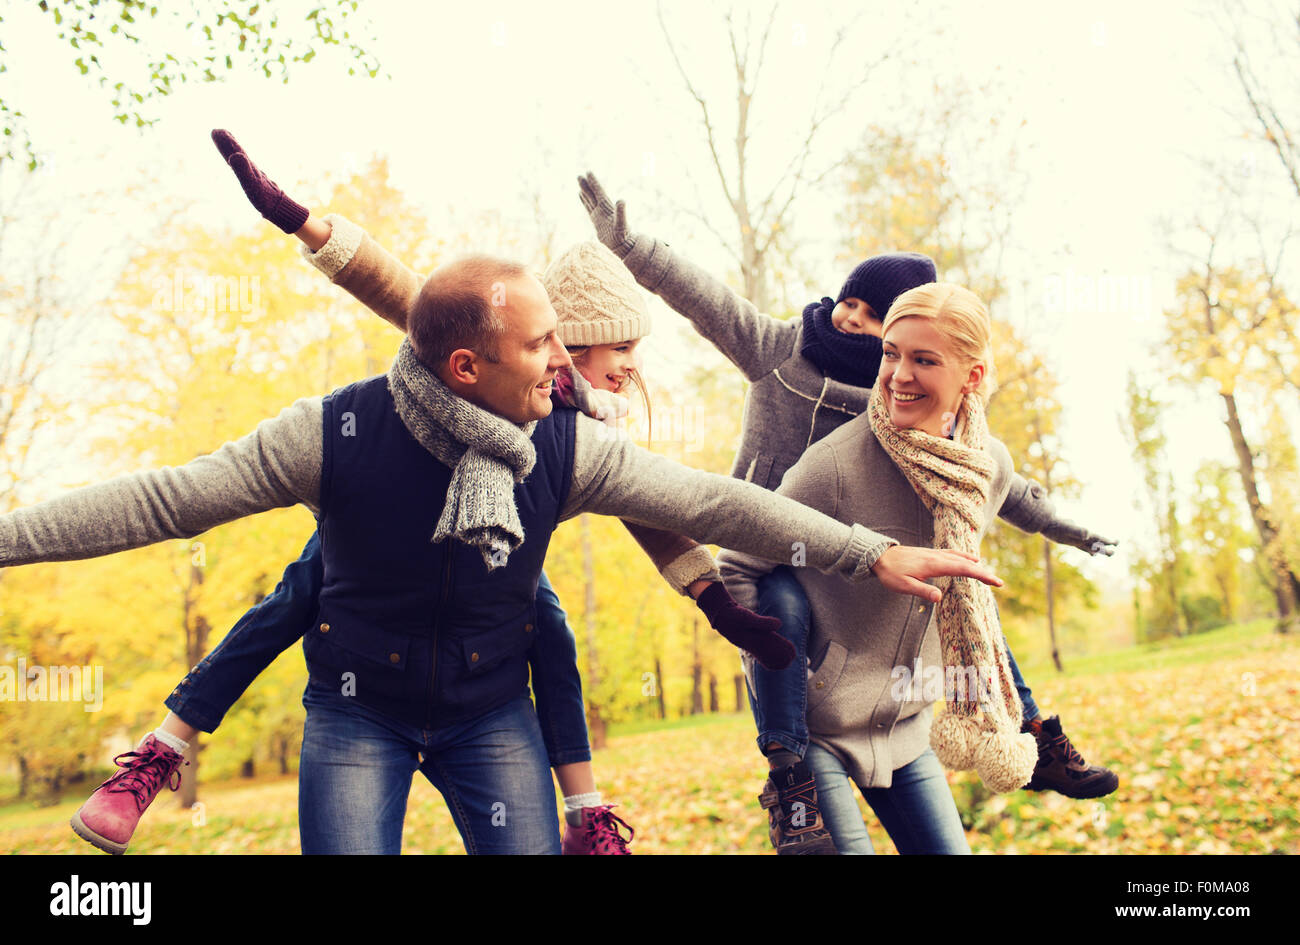 happy family having fun in autumn park - Stock Image